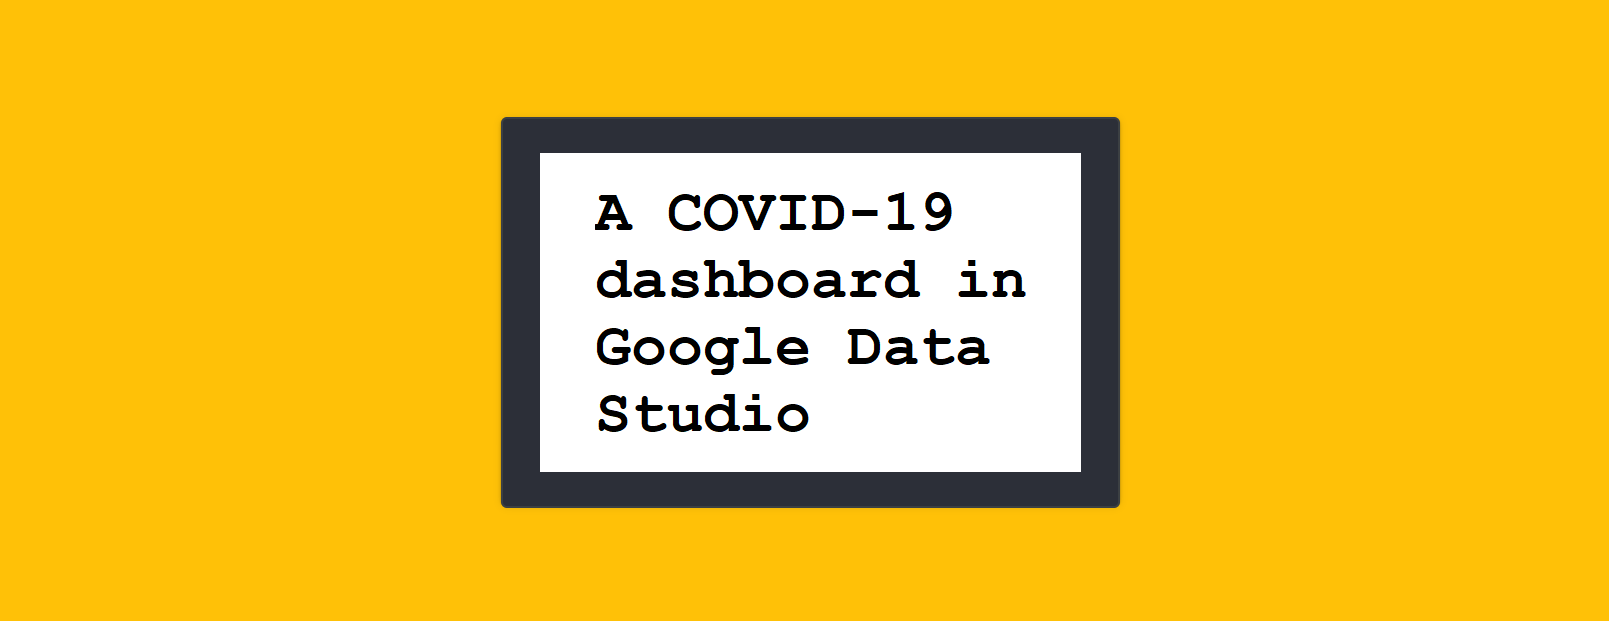 A COVID-19 dashboard in Google Data Studio